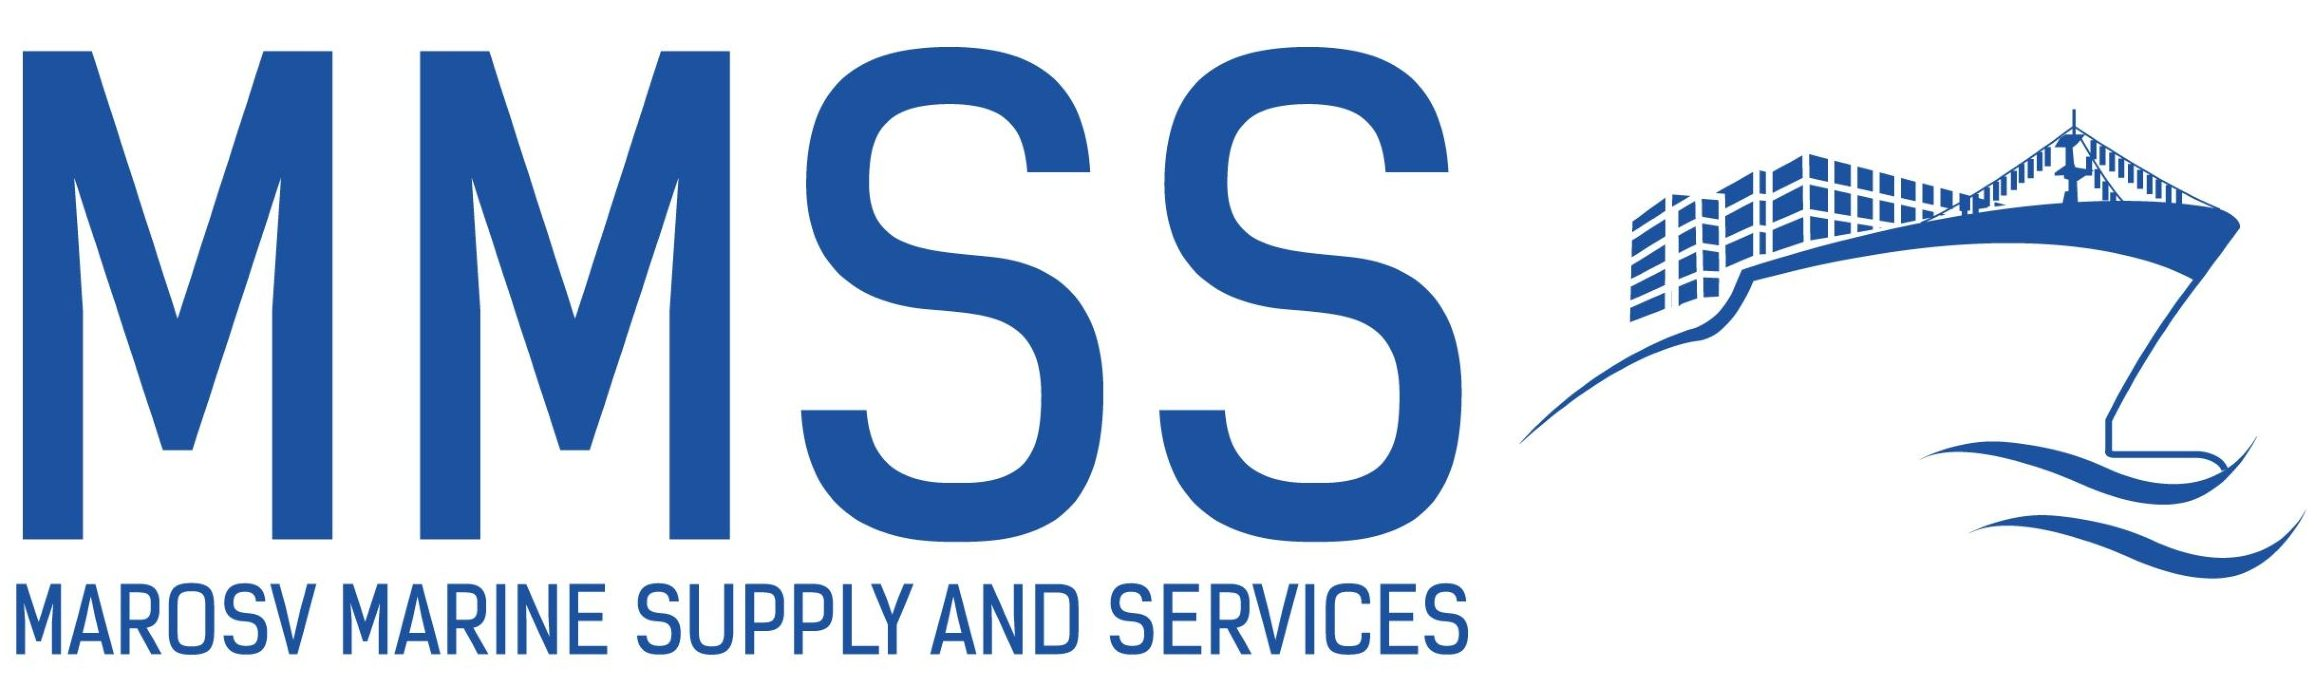 Marosv Marine Supply and Services